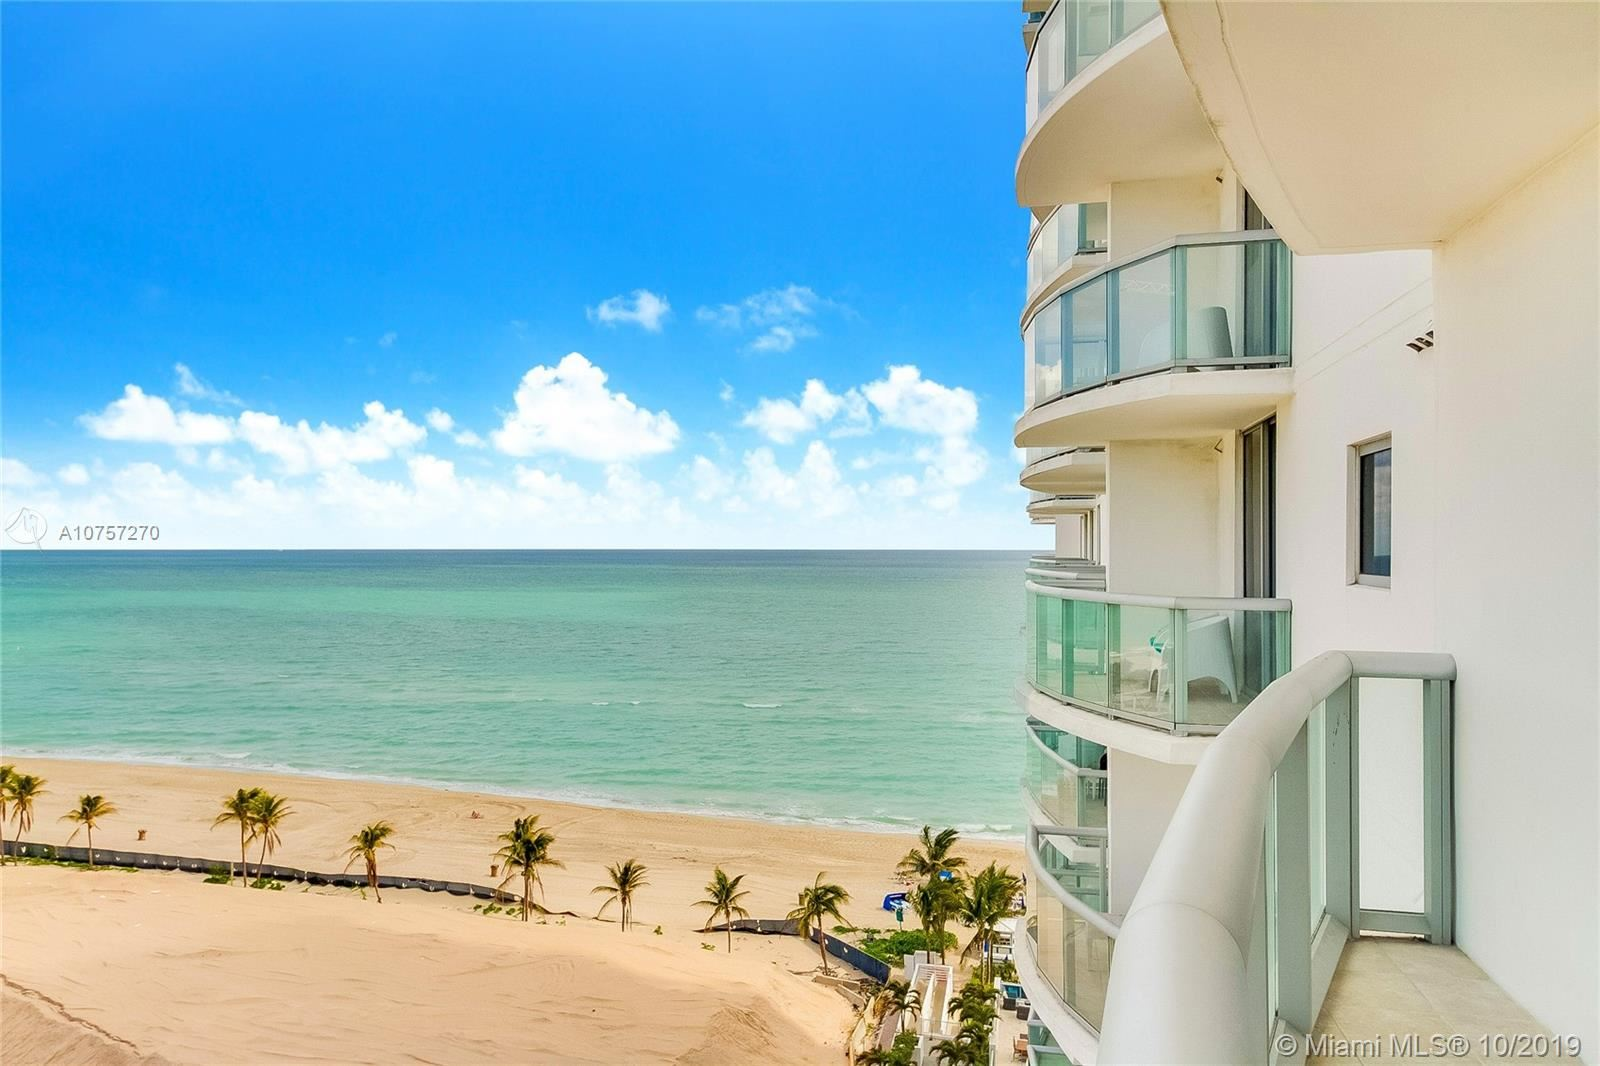 18683 Collins Ave #1407, Sunny Isles, FL 33160 - #: A10757270